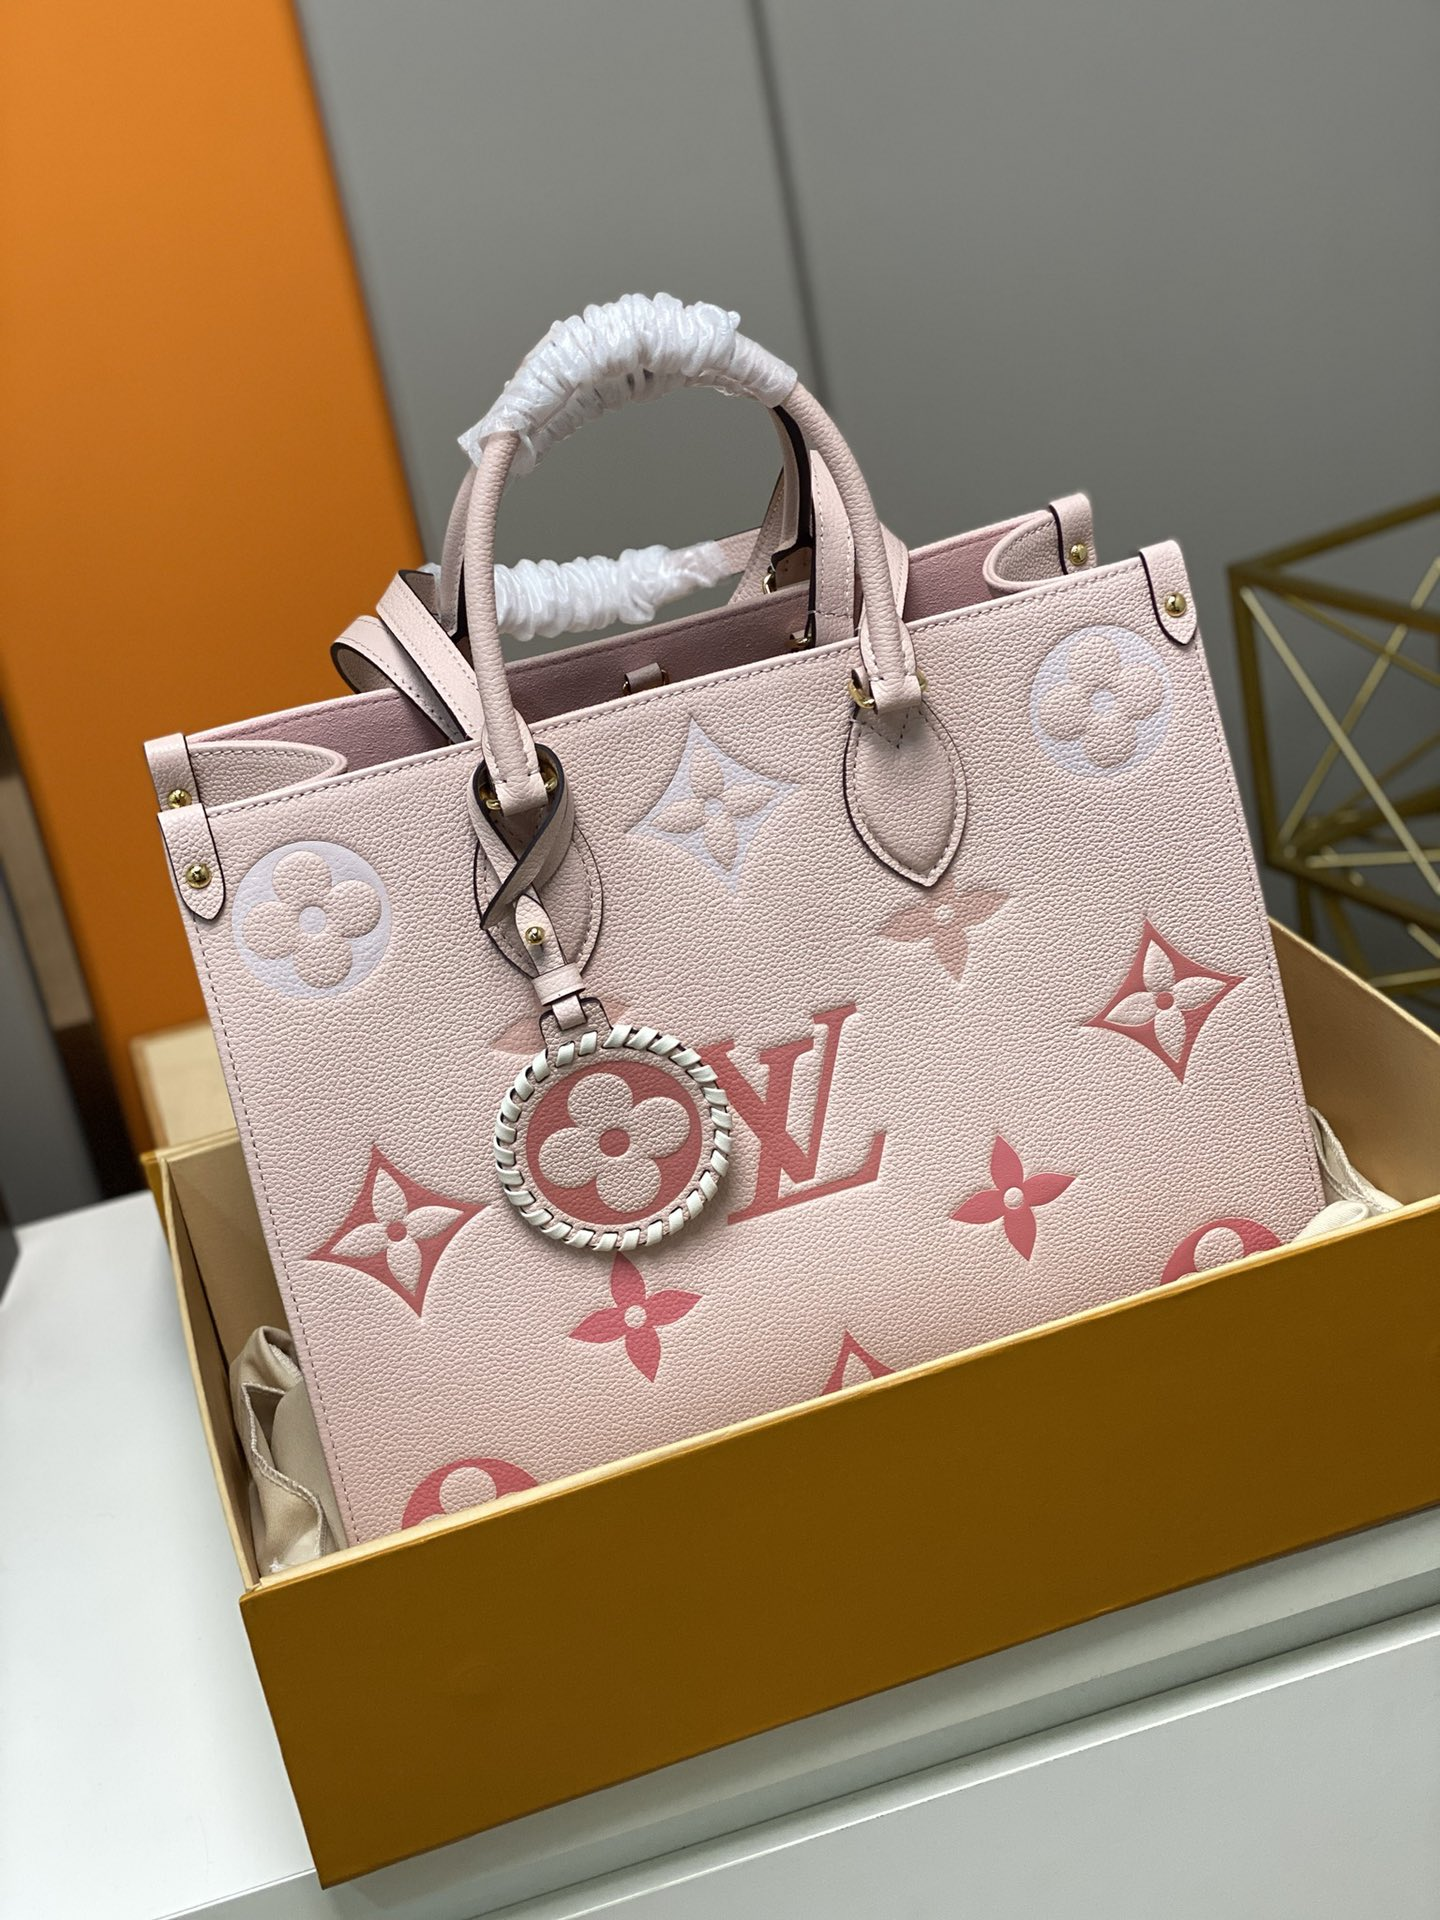 Replica Louis Vuitton M45595 Onthego PM Embossed Grained Cowhide Leather Pink